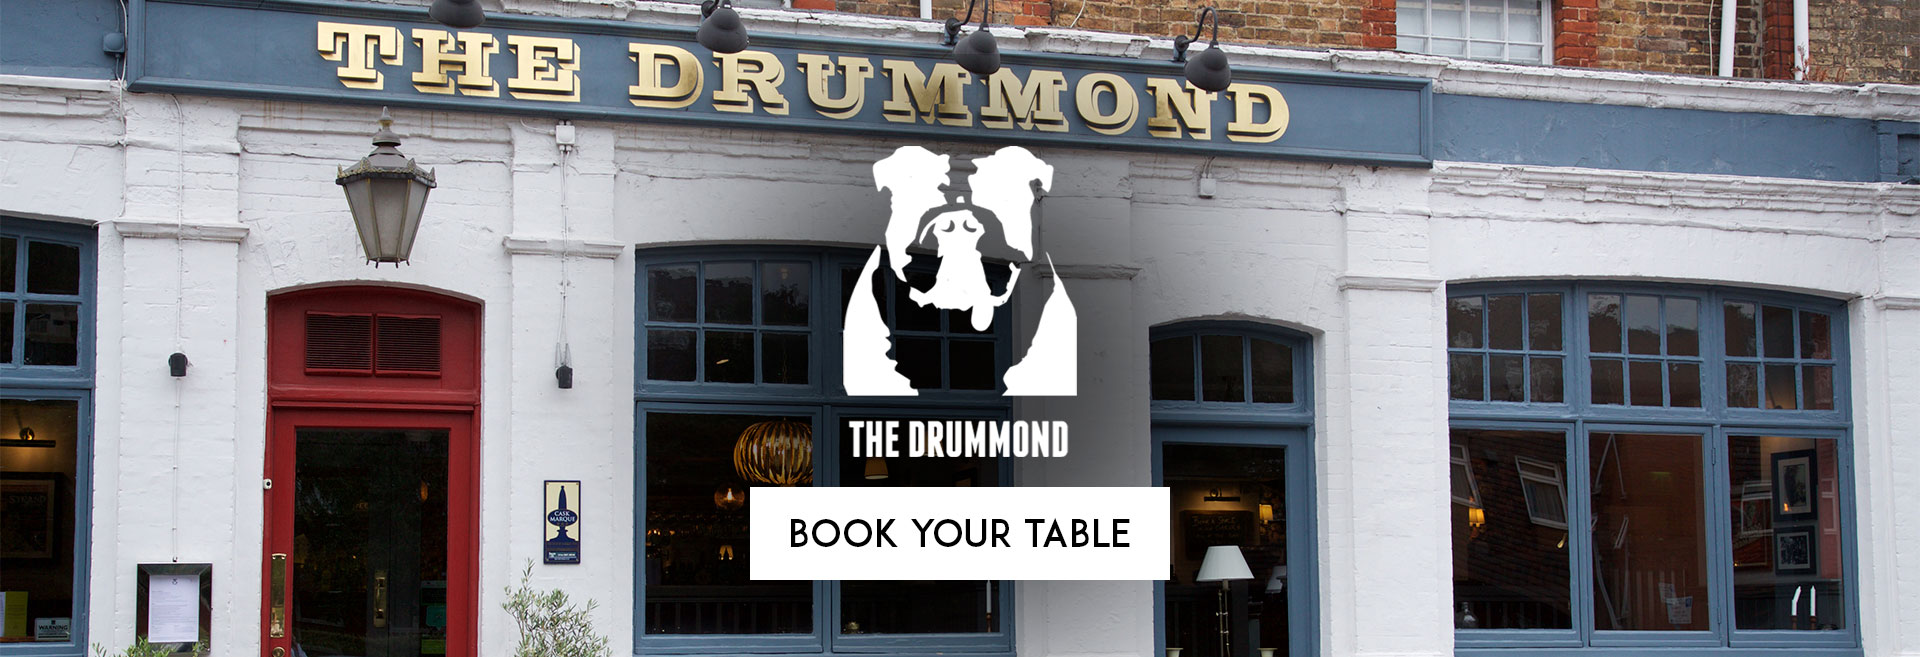 Book Your Table at The Drummond